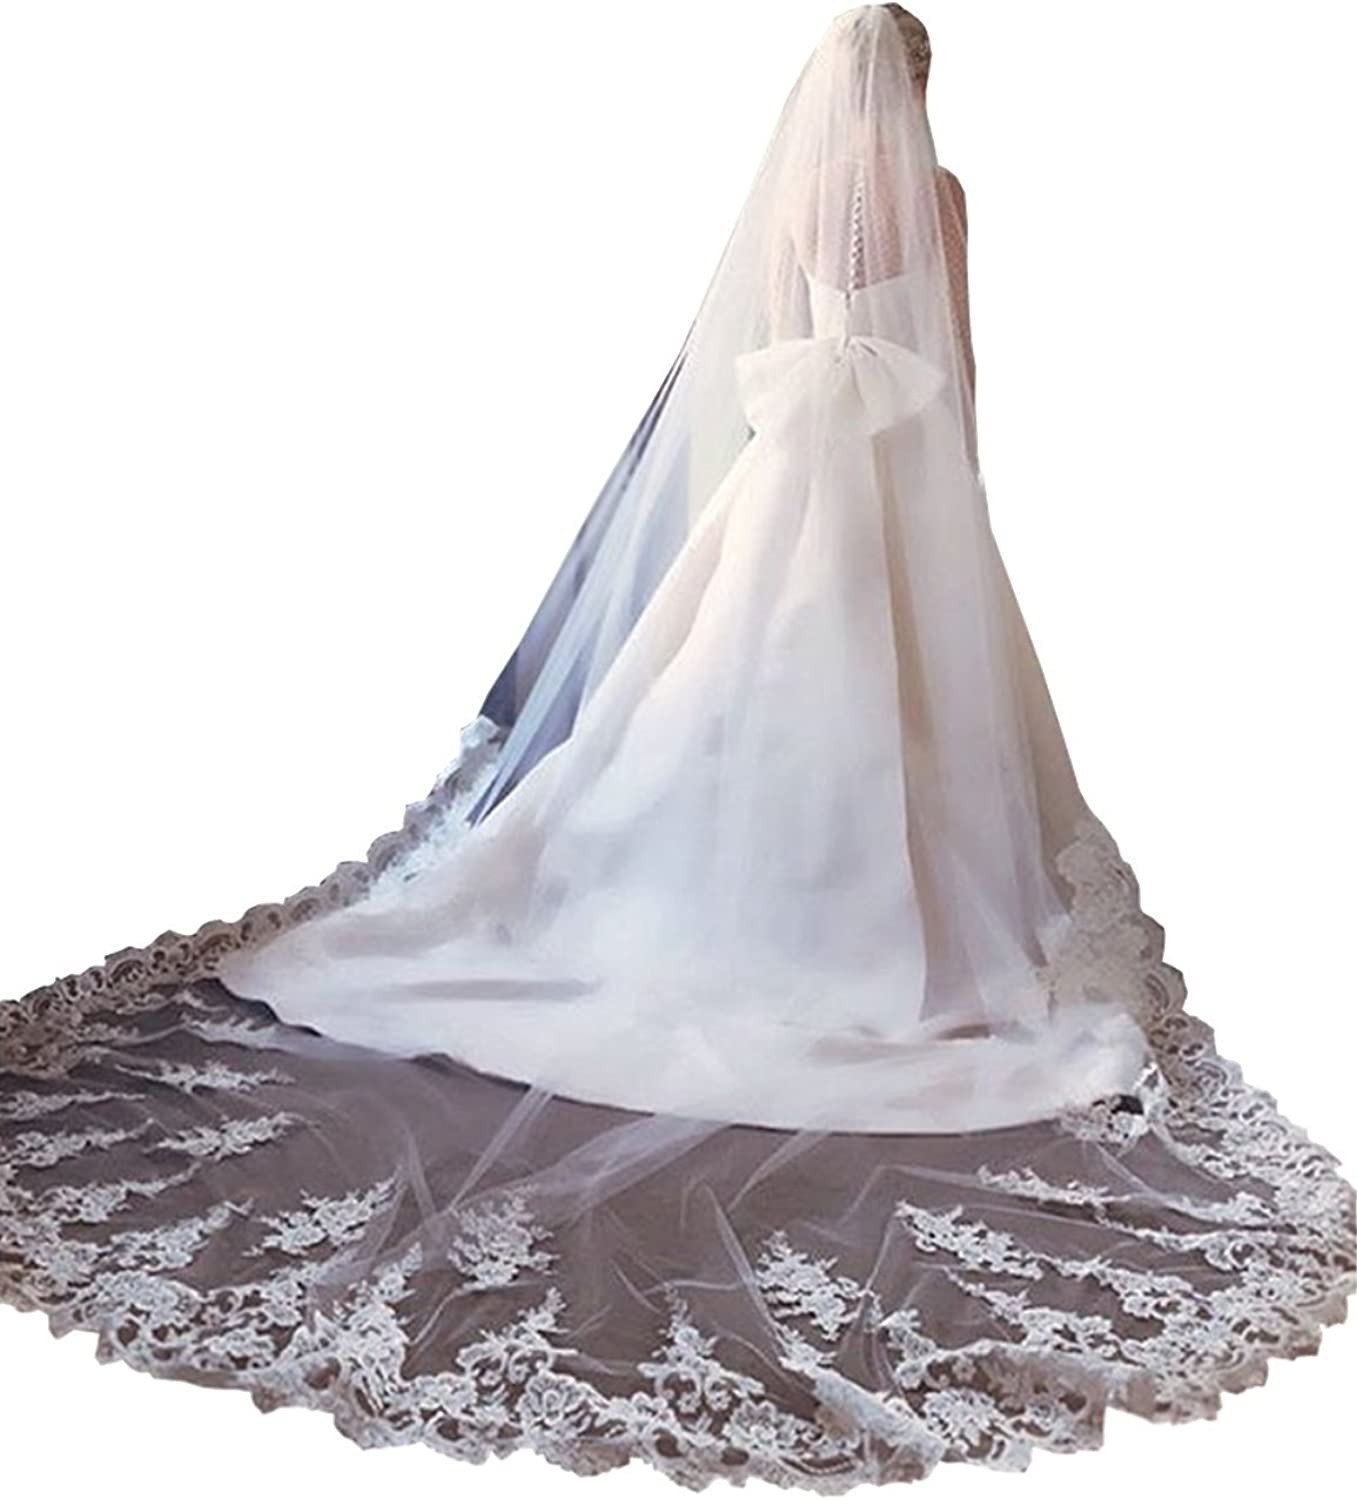 EllieHouse Women's Lace Chapel Wedding Bridal Veil With Free Comb E11